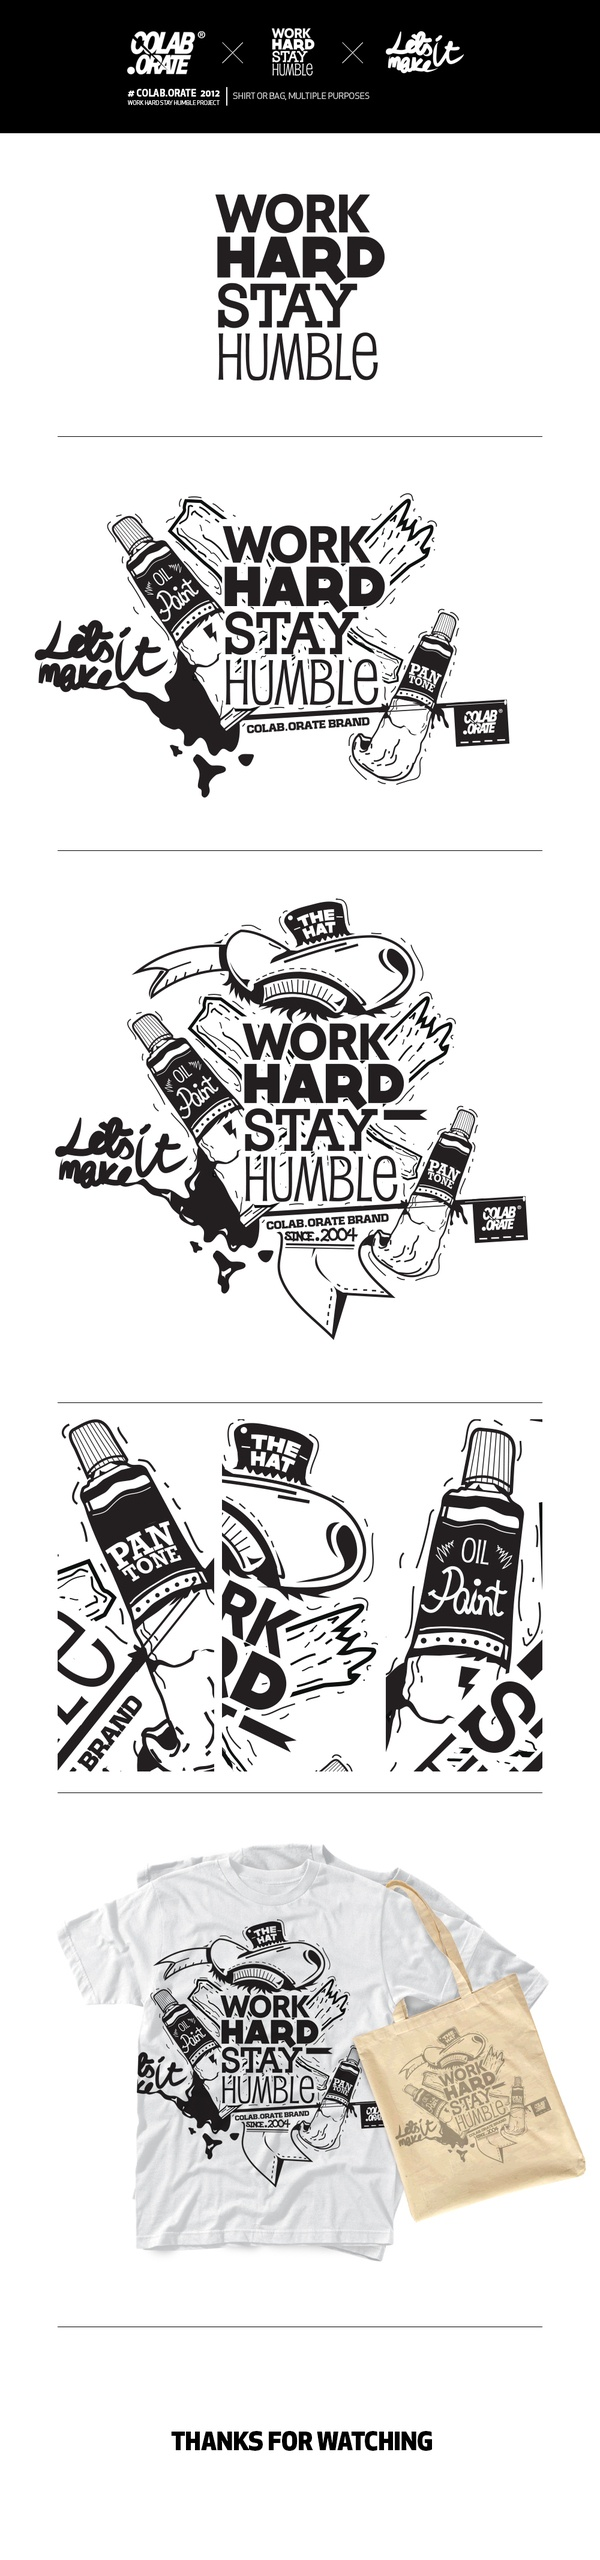 # WORK HARD STAY HUMBLE by Grzegorz Rauch, via Behance